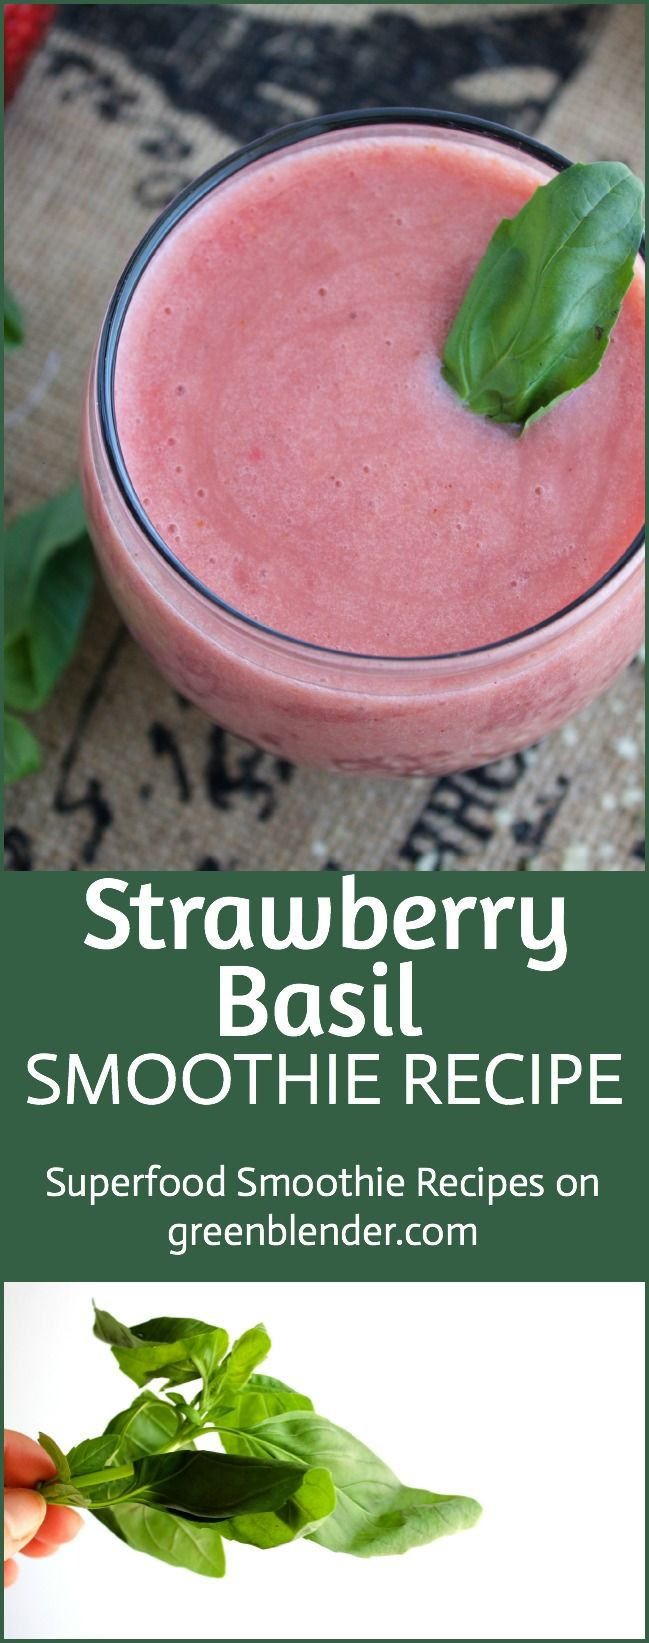 Blending Recipes For Weight Loss  83 best Smoothies For Weight Loss images on Pinterest